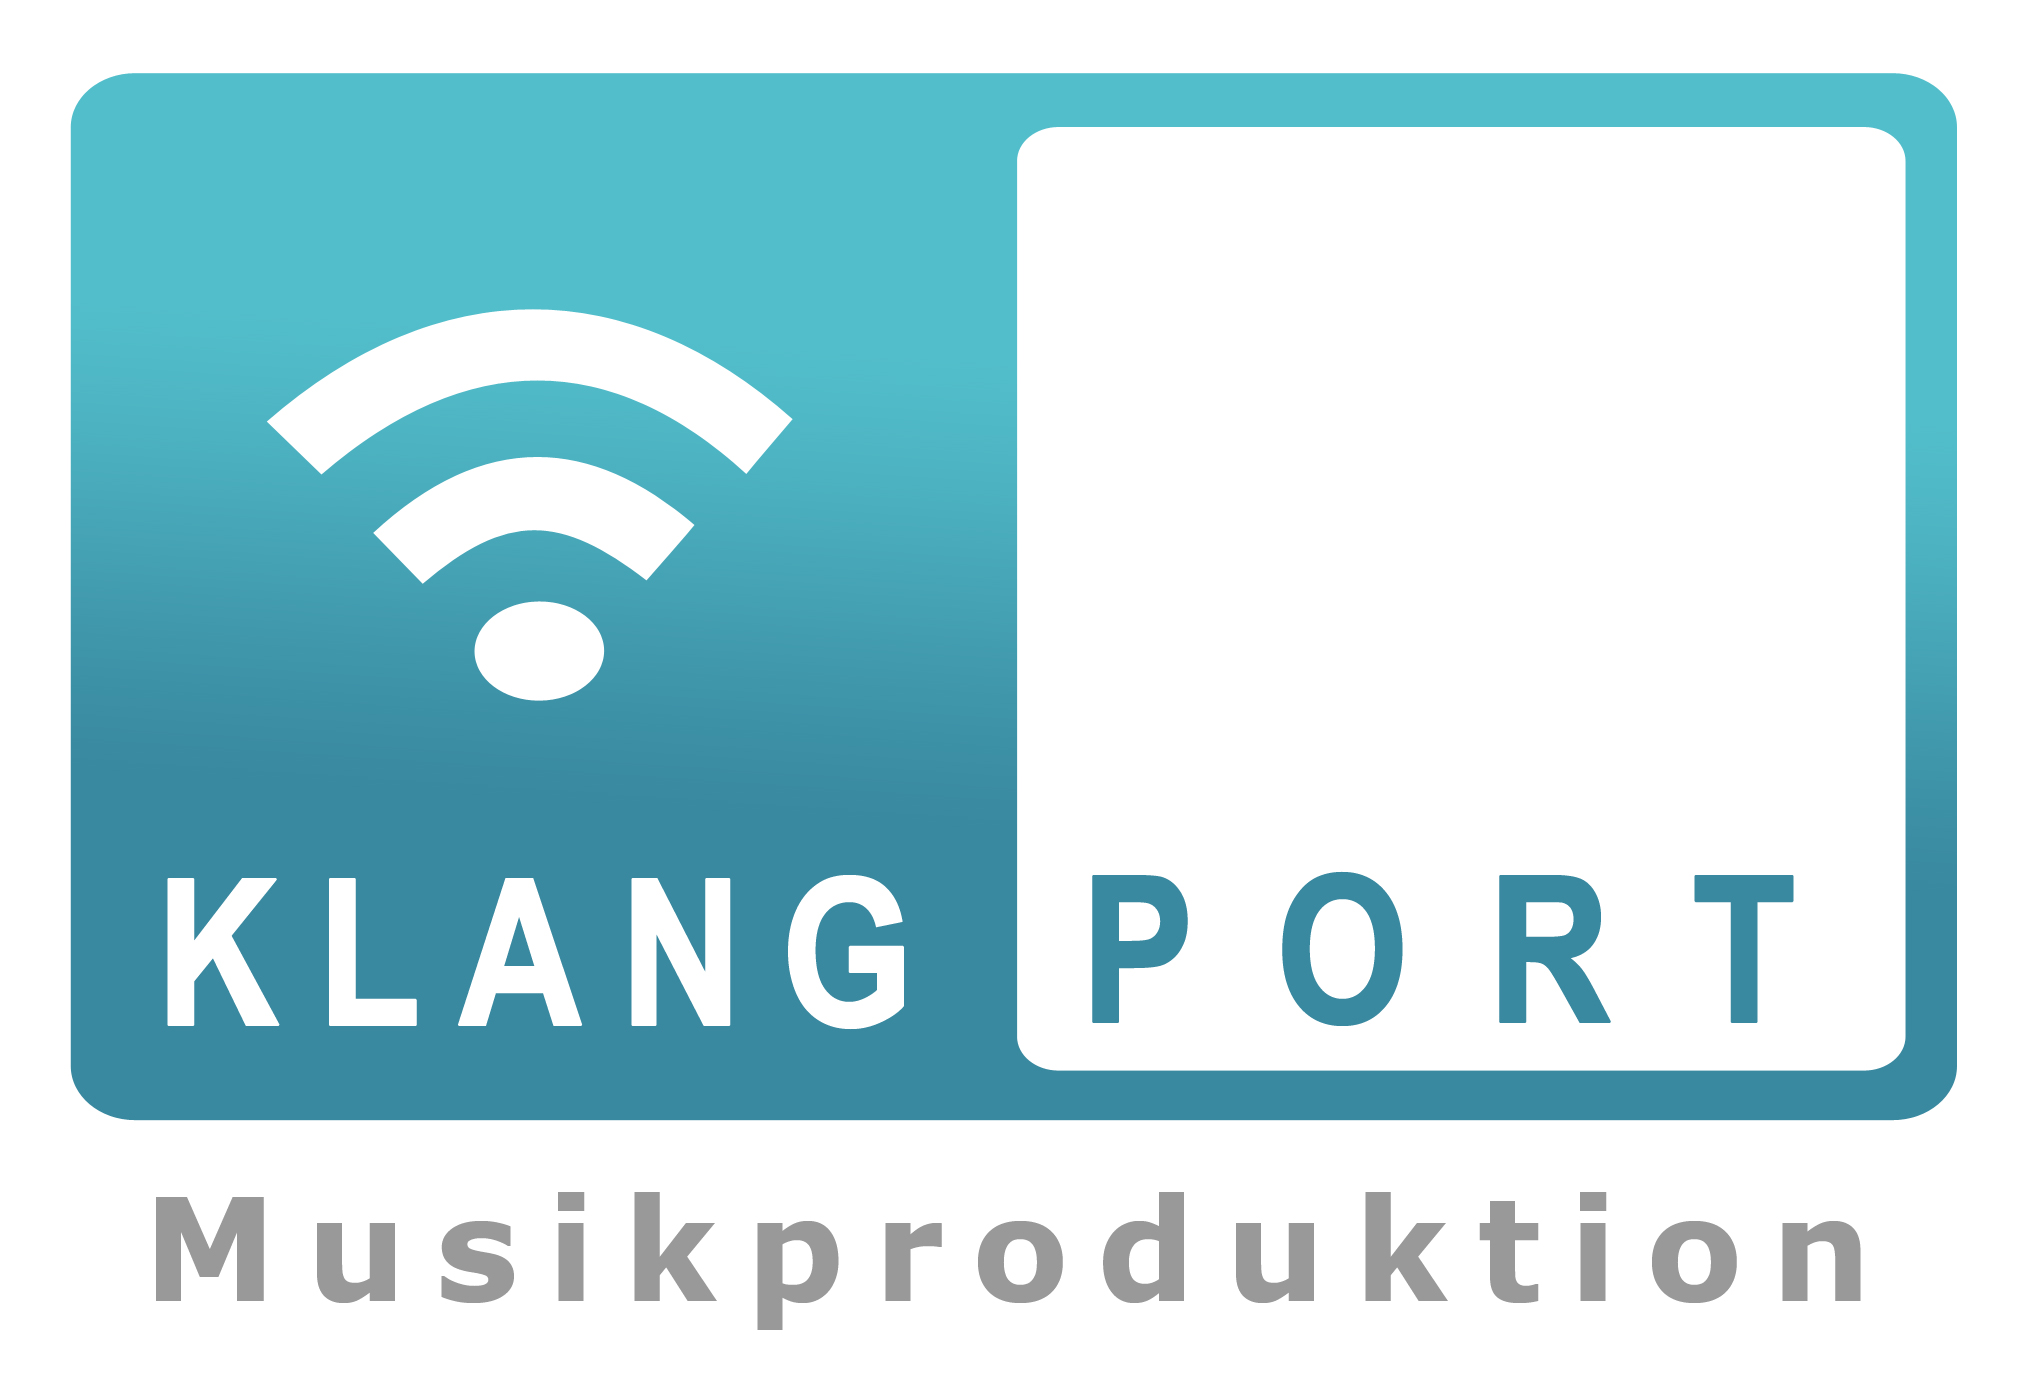 Klangport Musikproduktion